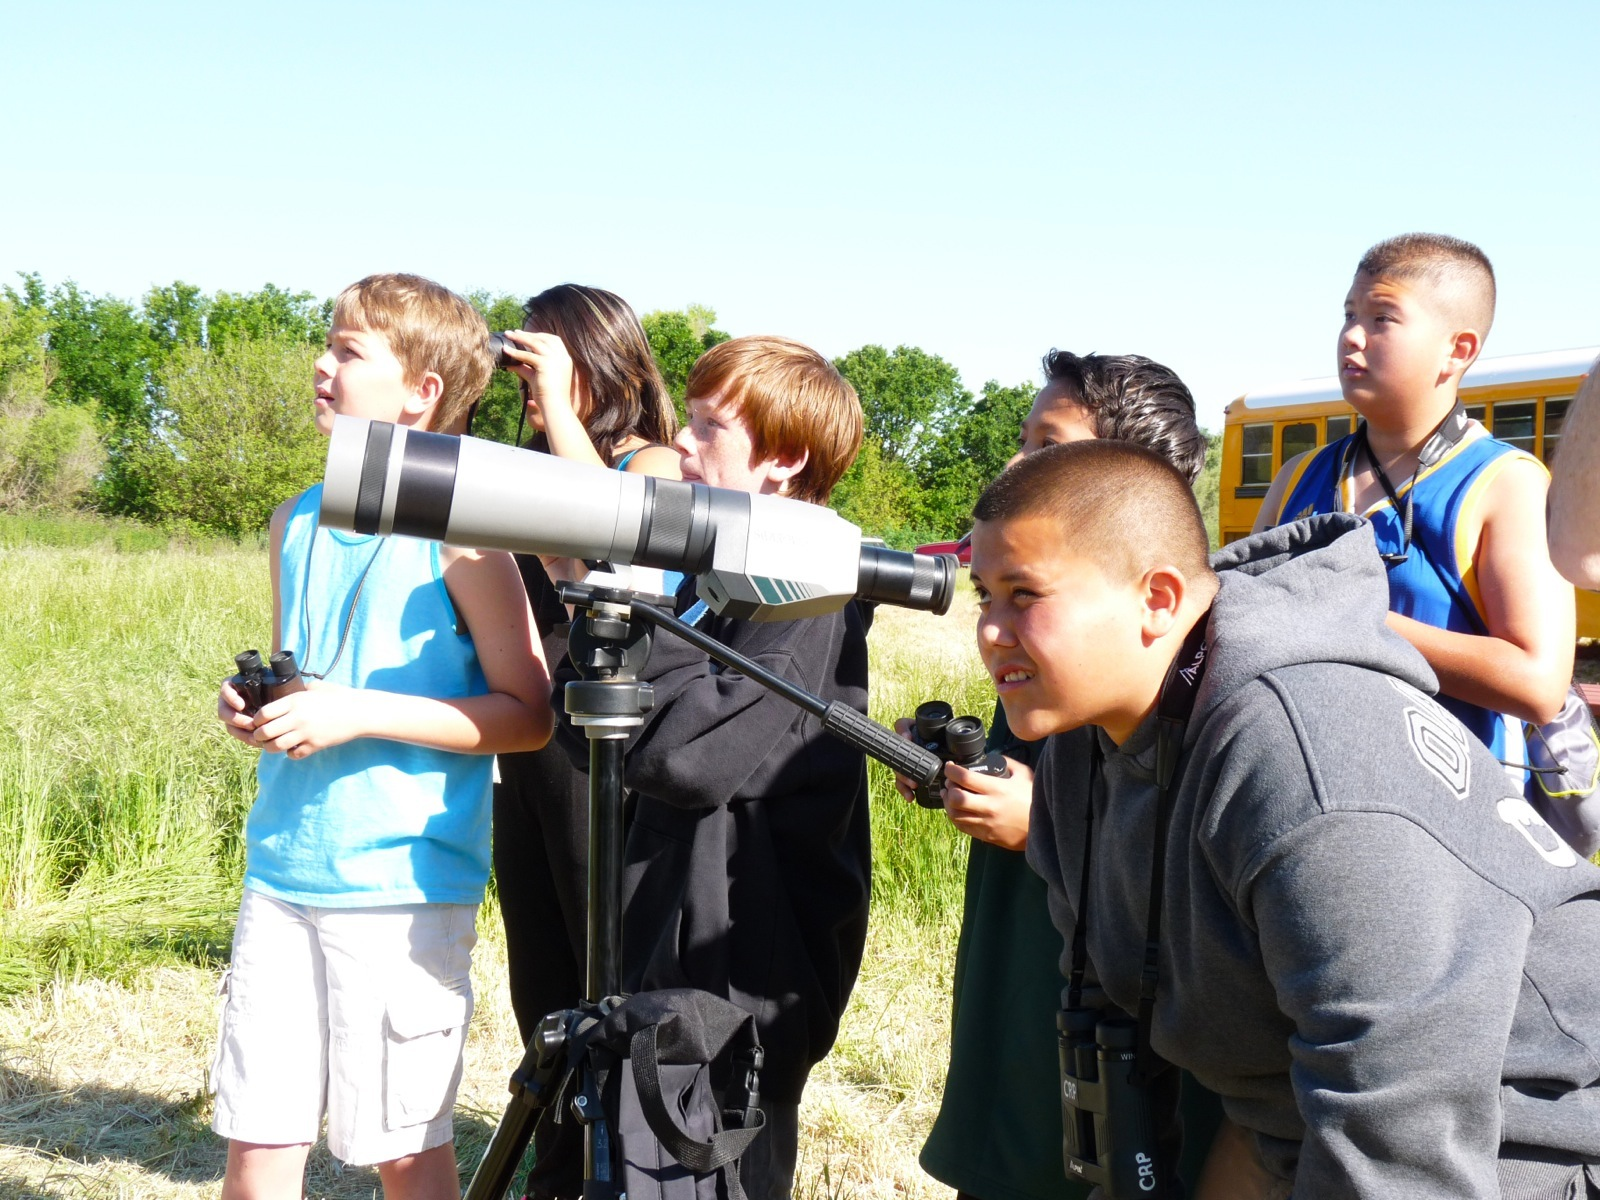 Students use binoculars to look for wildlife in a grassy area